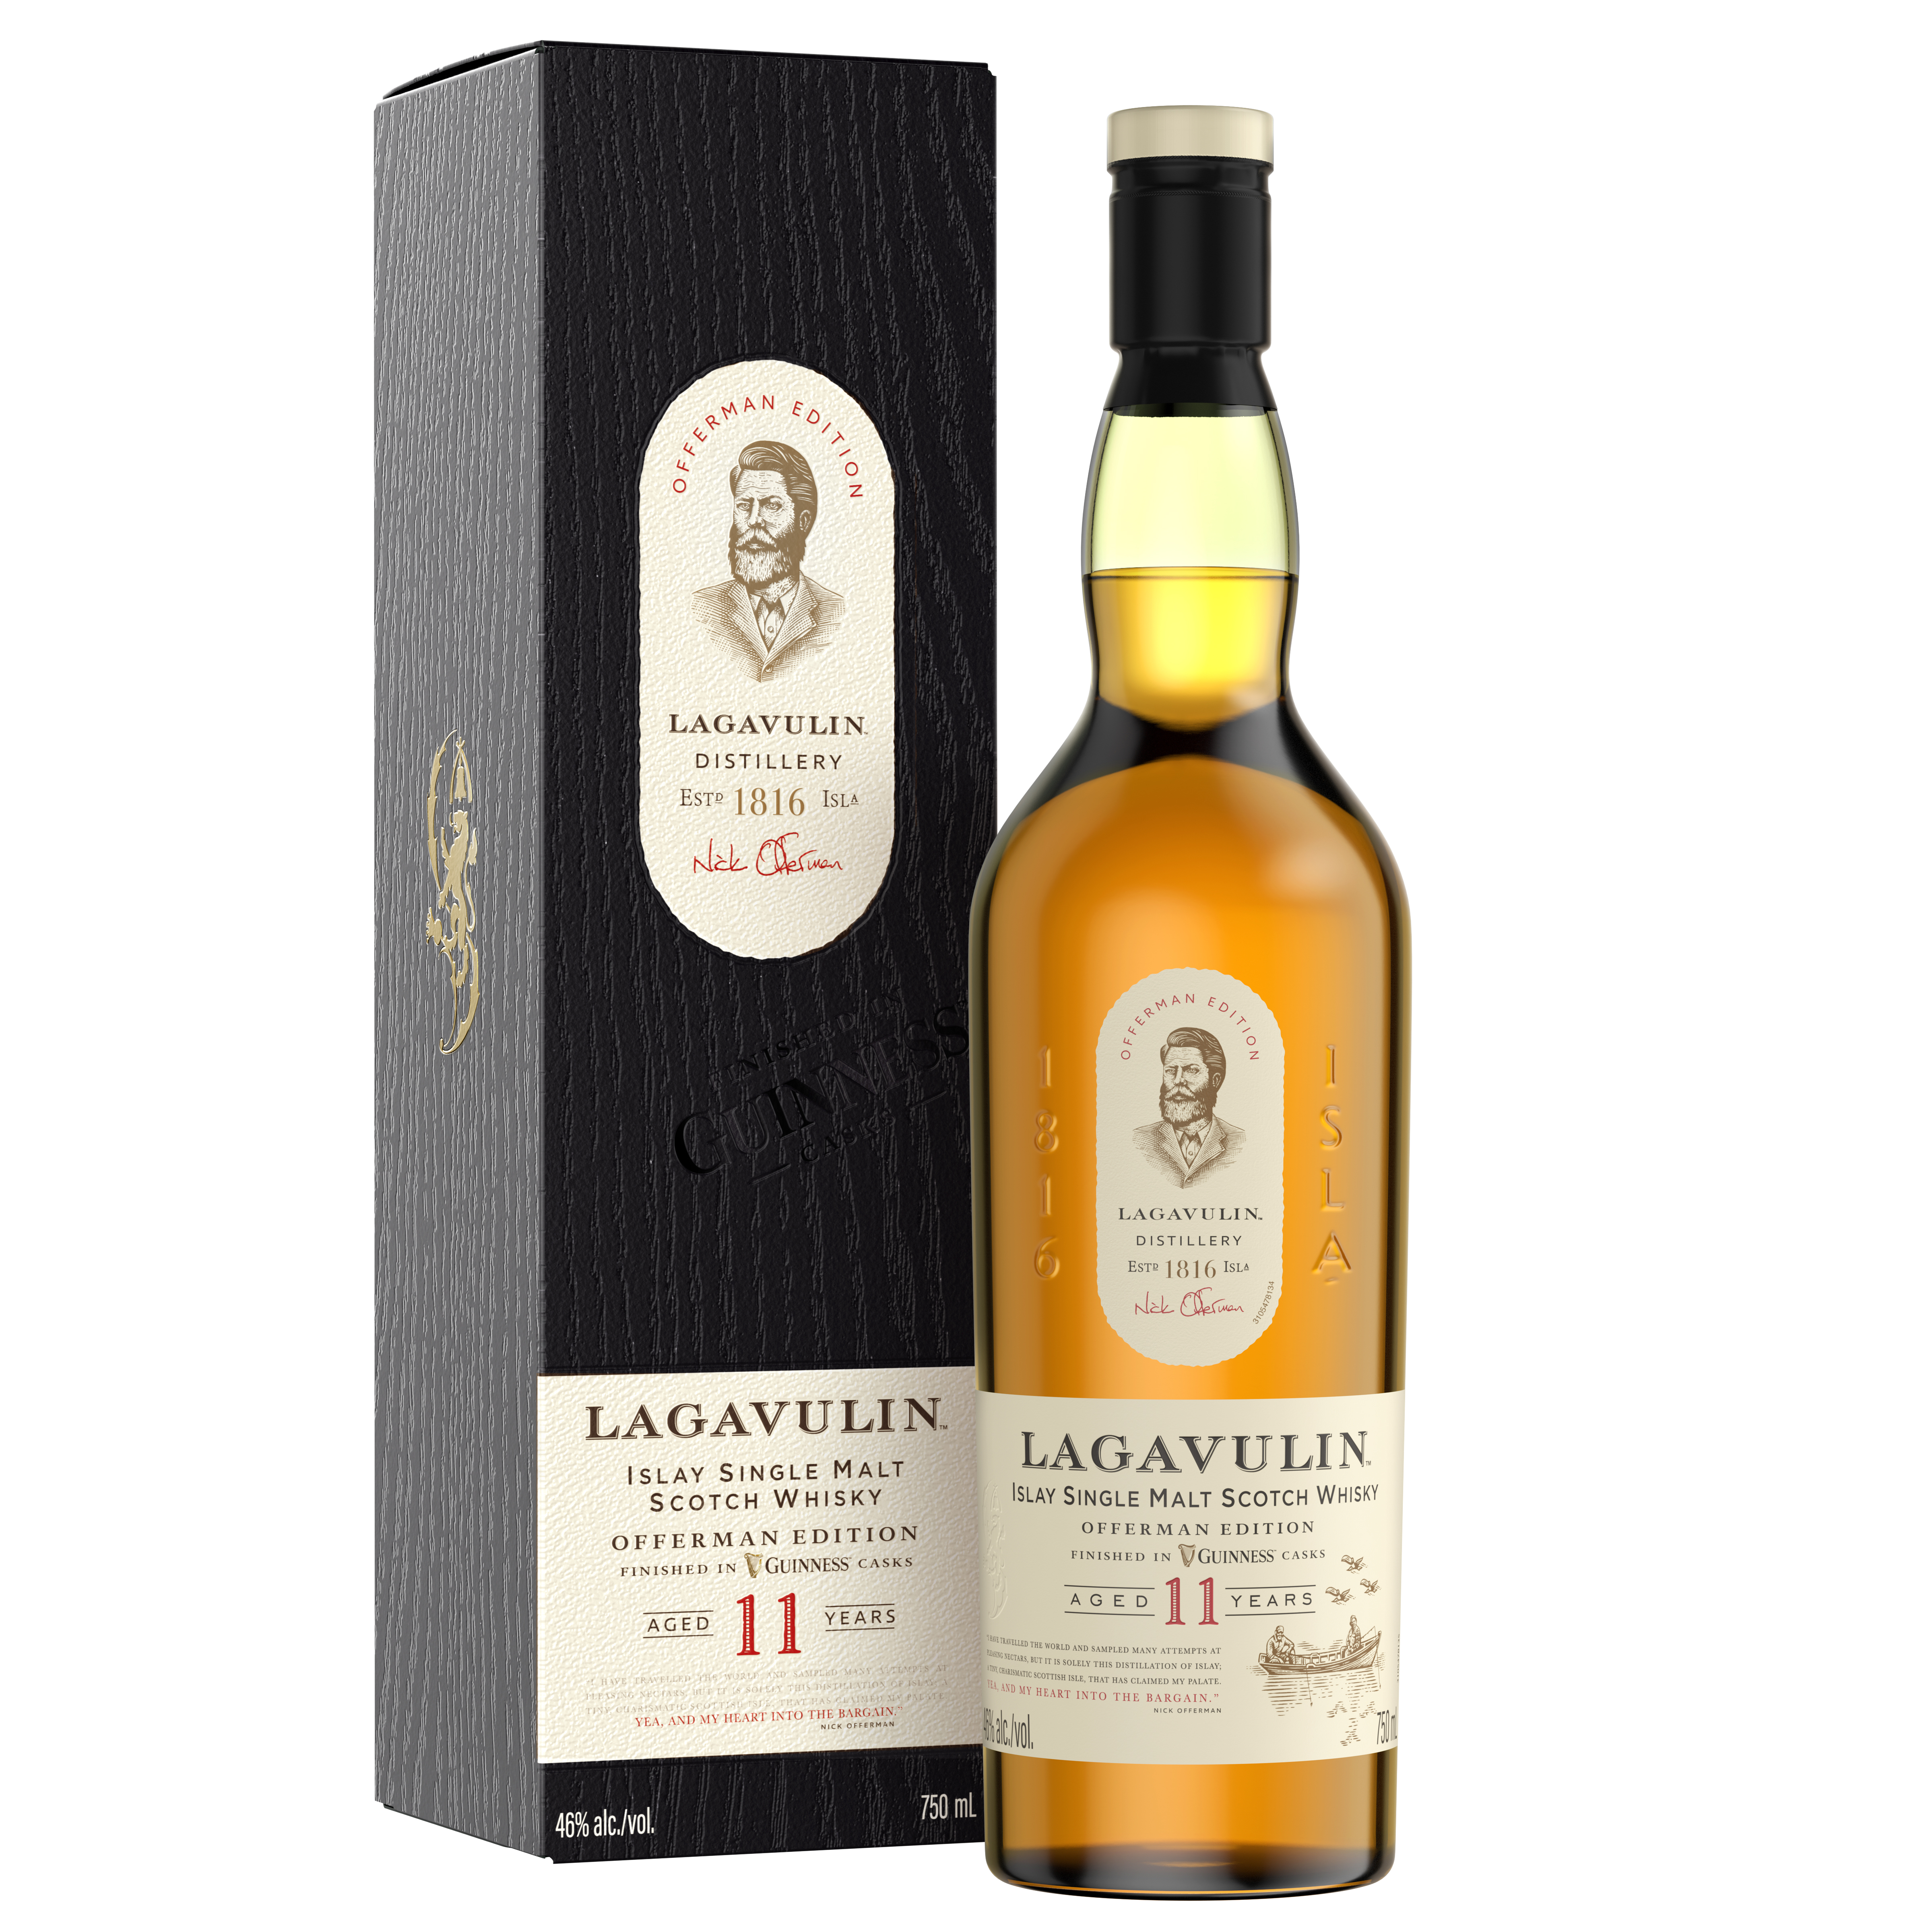 Lagavulin Offerman Edition: Guinness Cask Finish review